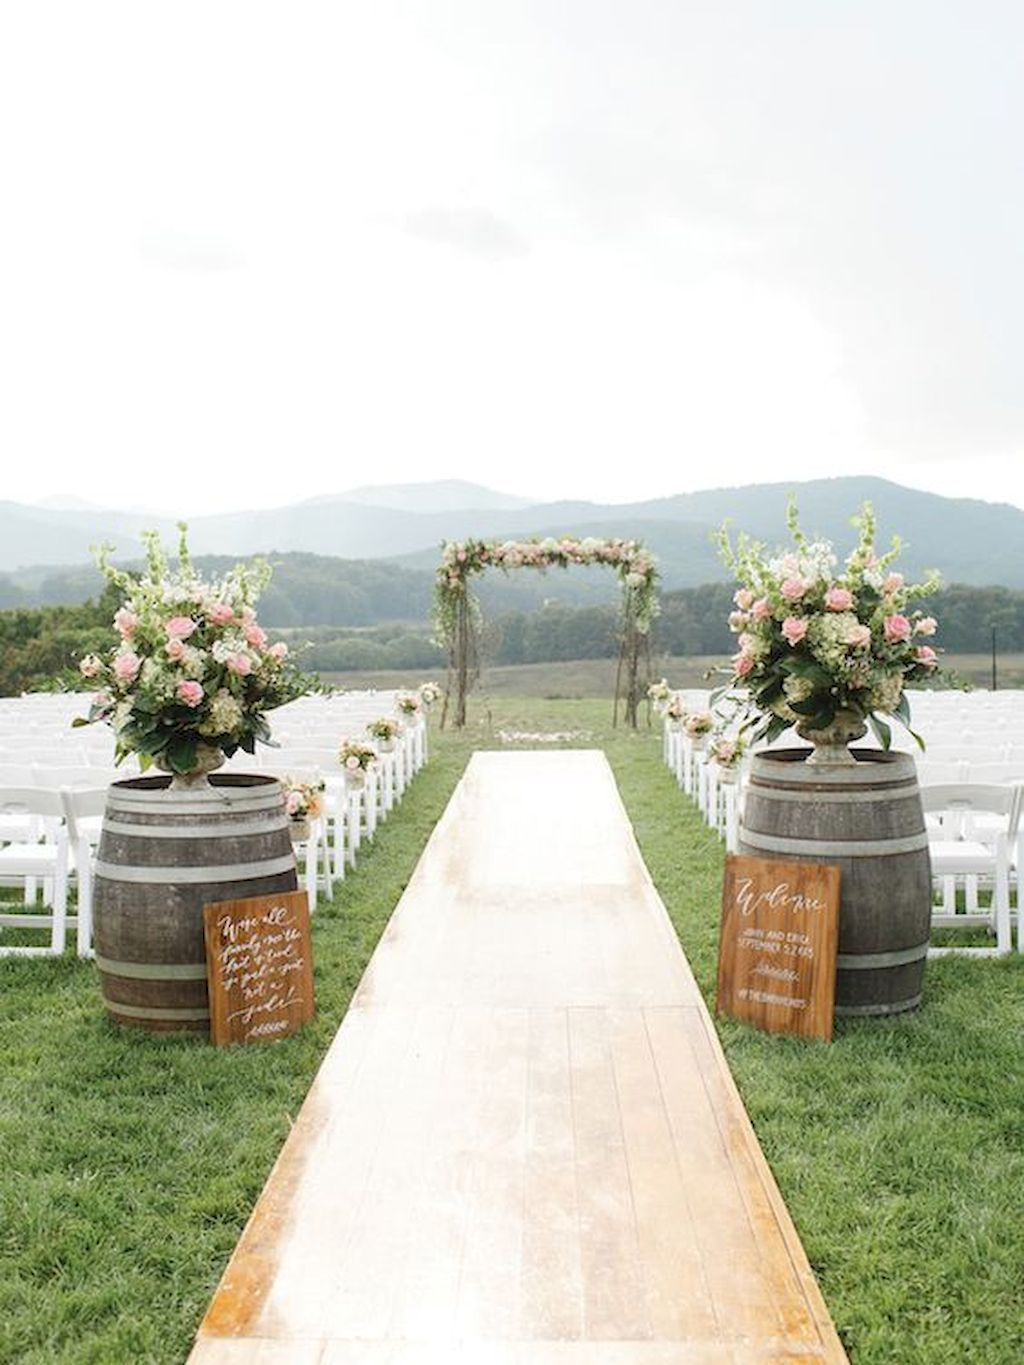 48 Elegant Outdoor Wedding Decor Ideas on A Budget | Pinterest ...